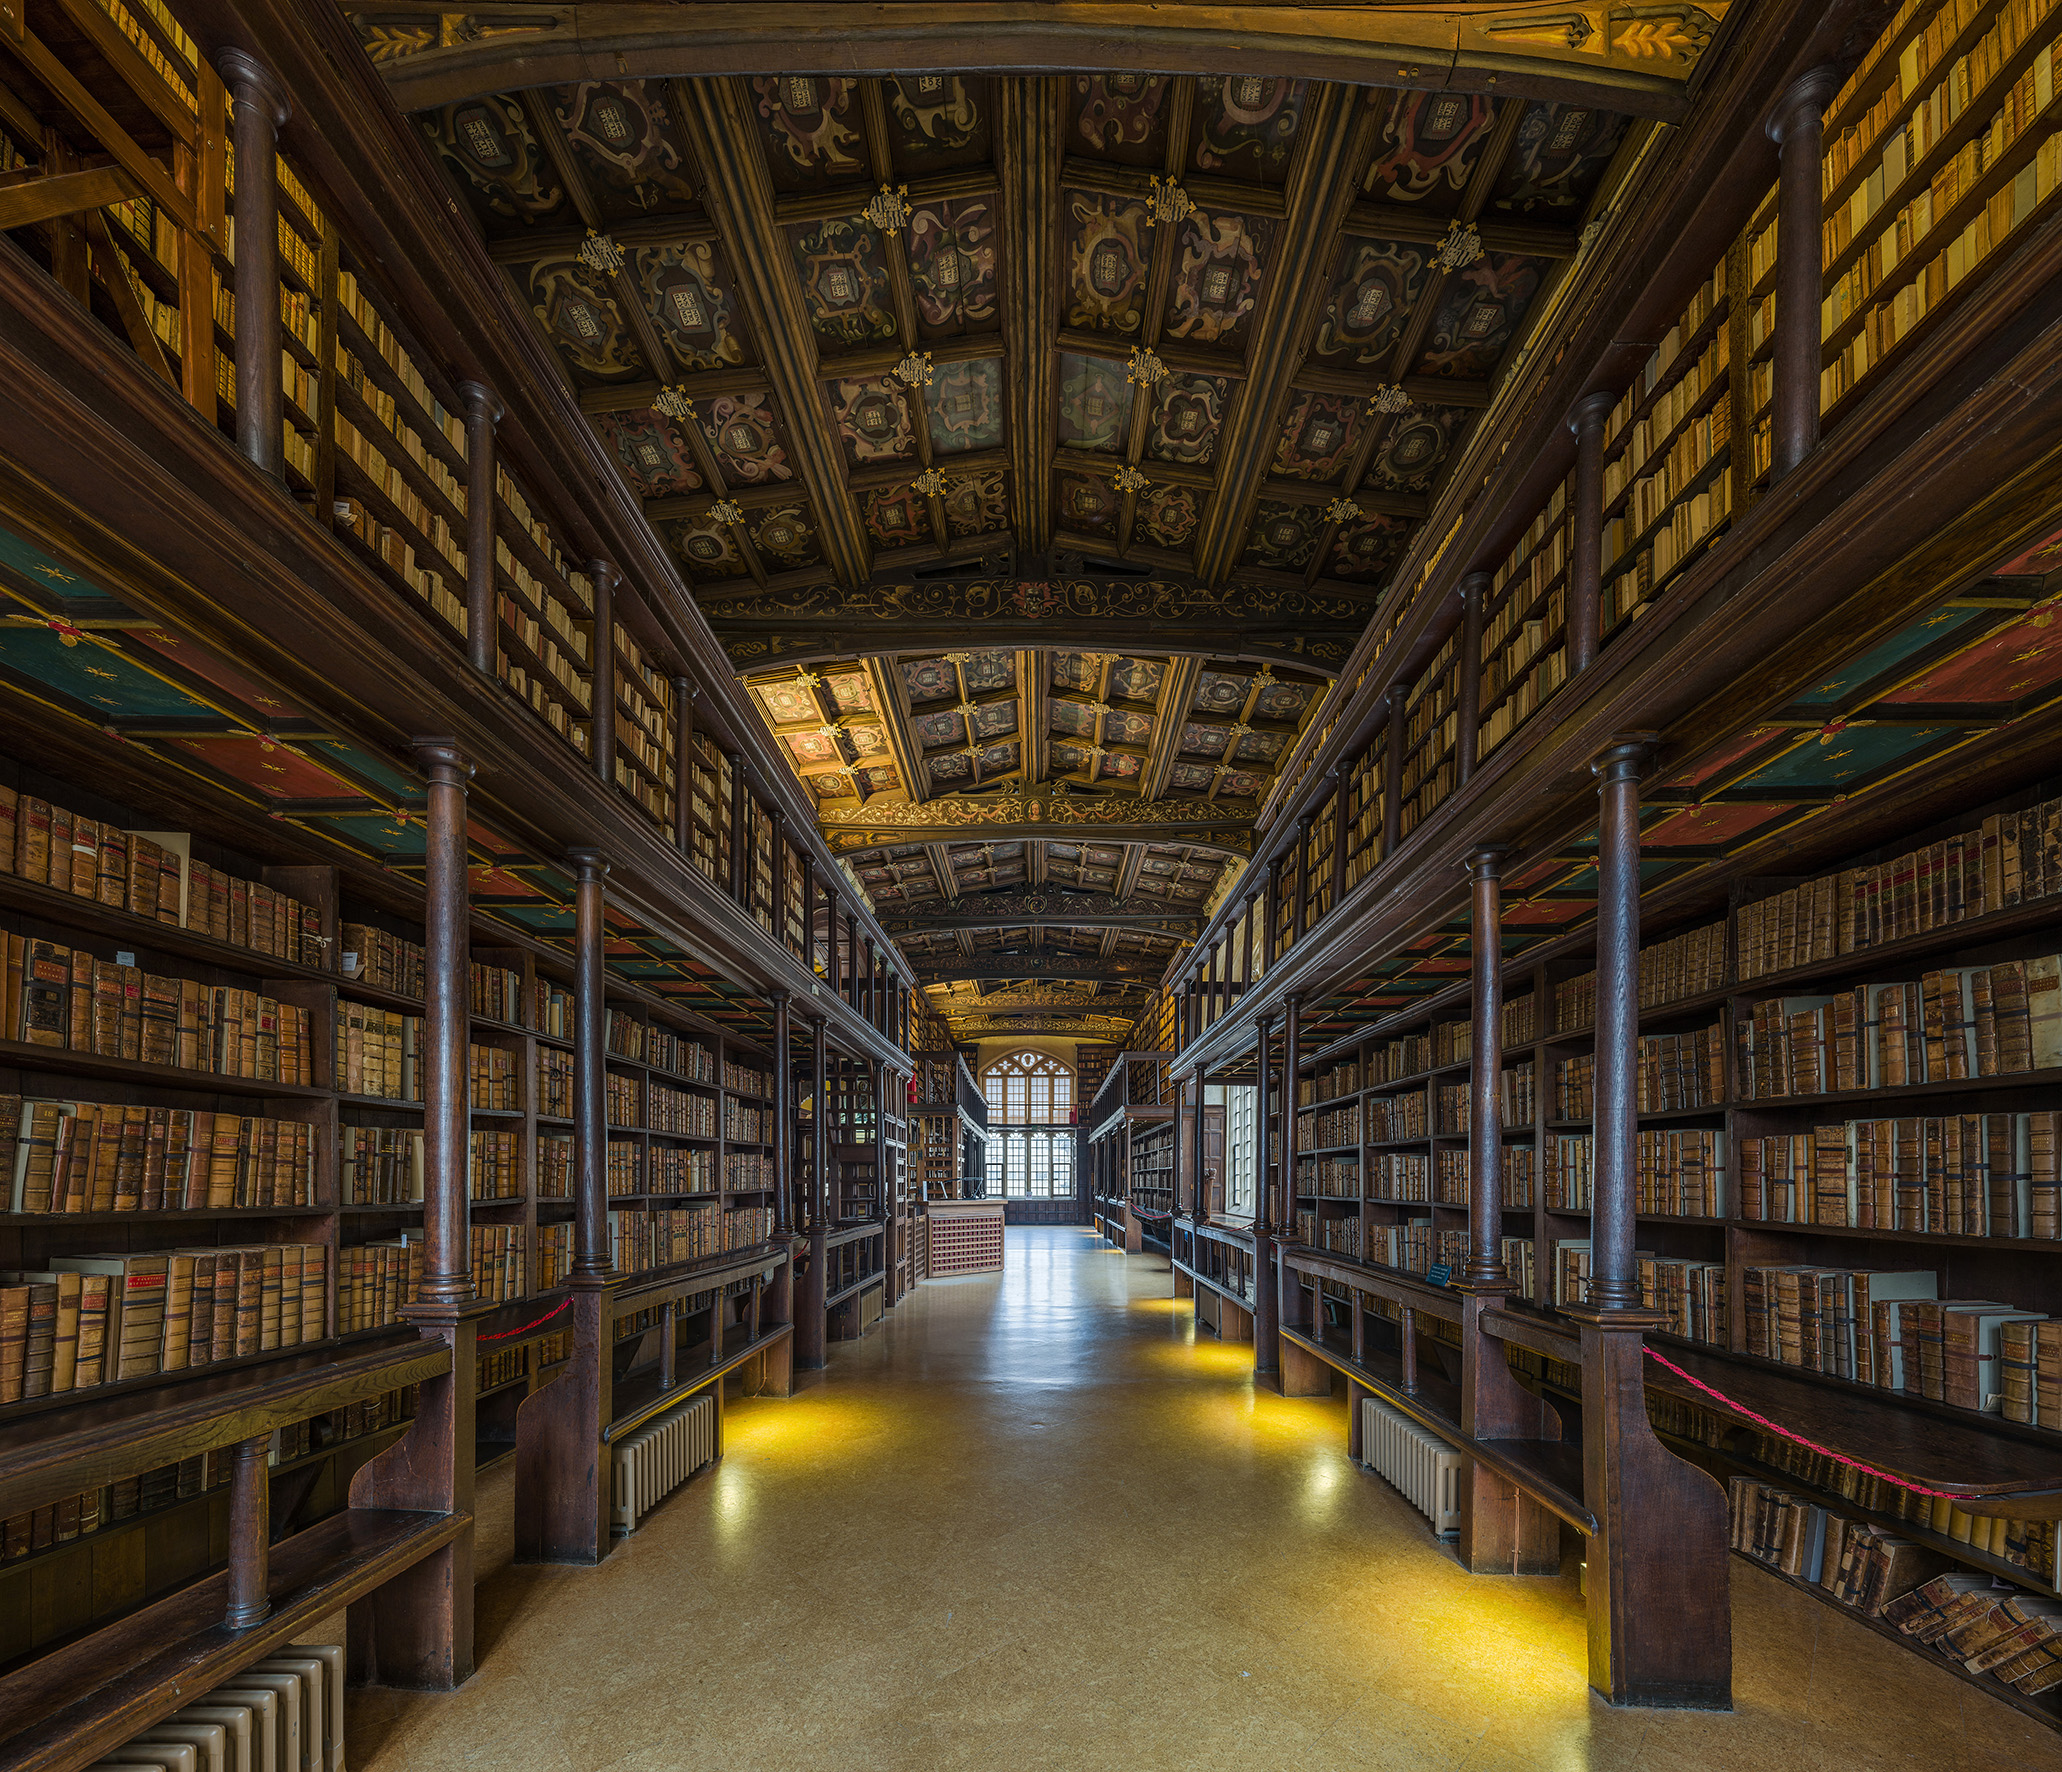 Duke_Humfrey's_Library_Interior_2,_Bodleian_Library,_Oxford,_UK_-_Diliff